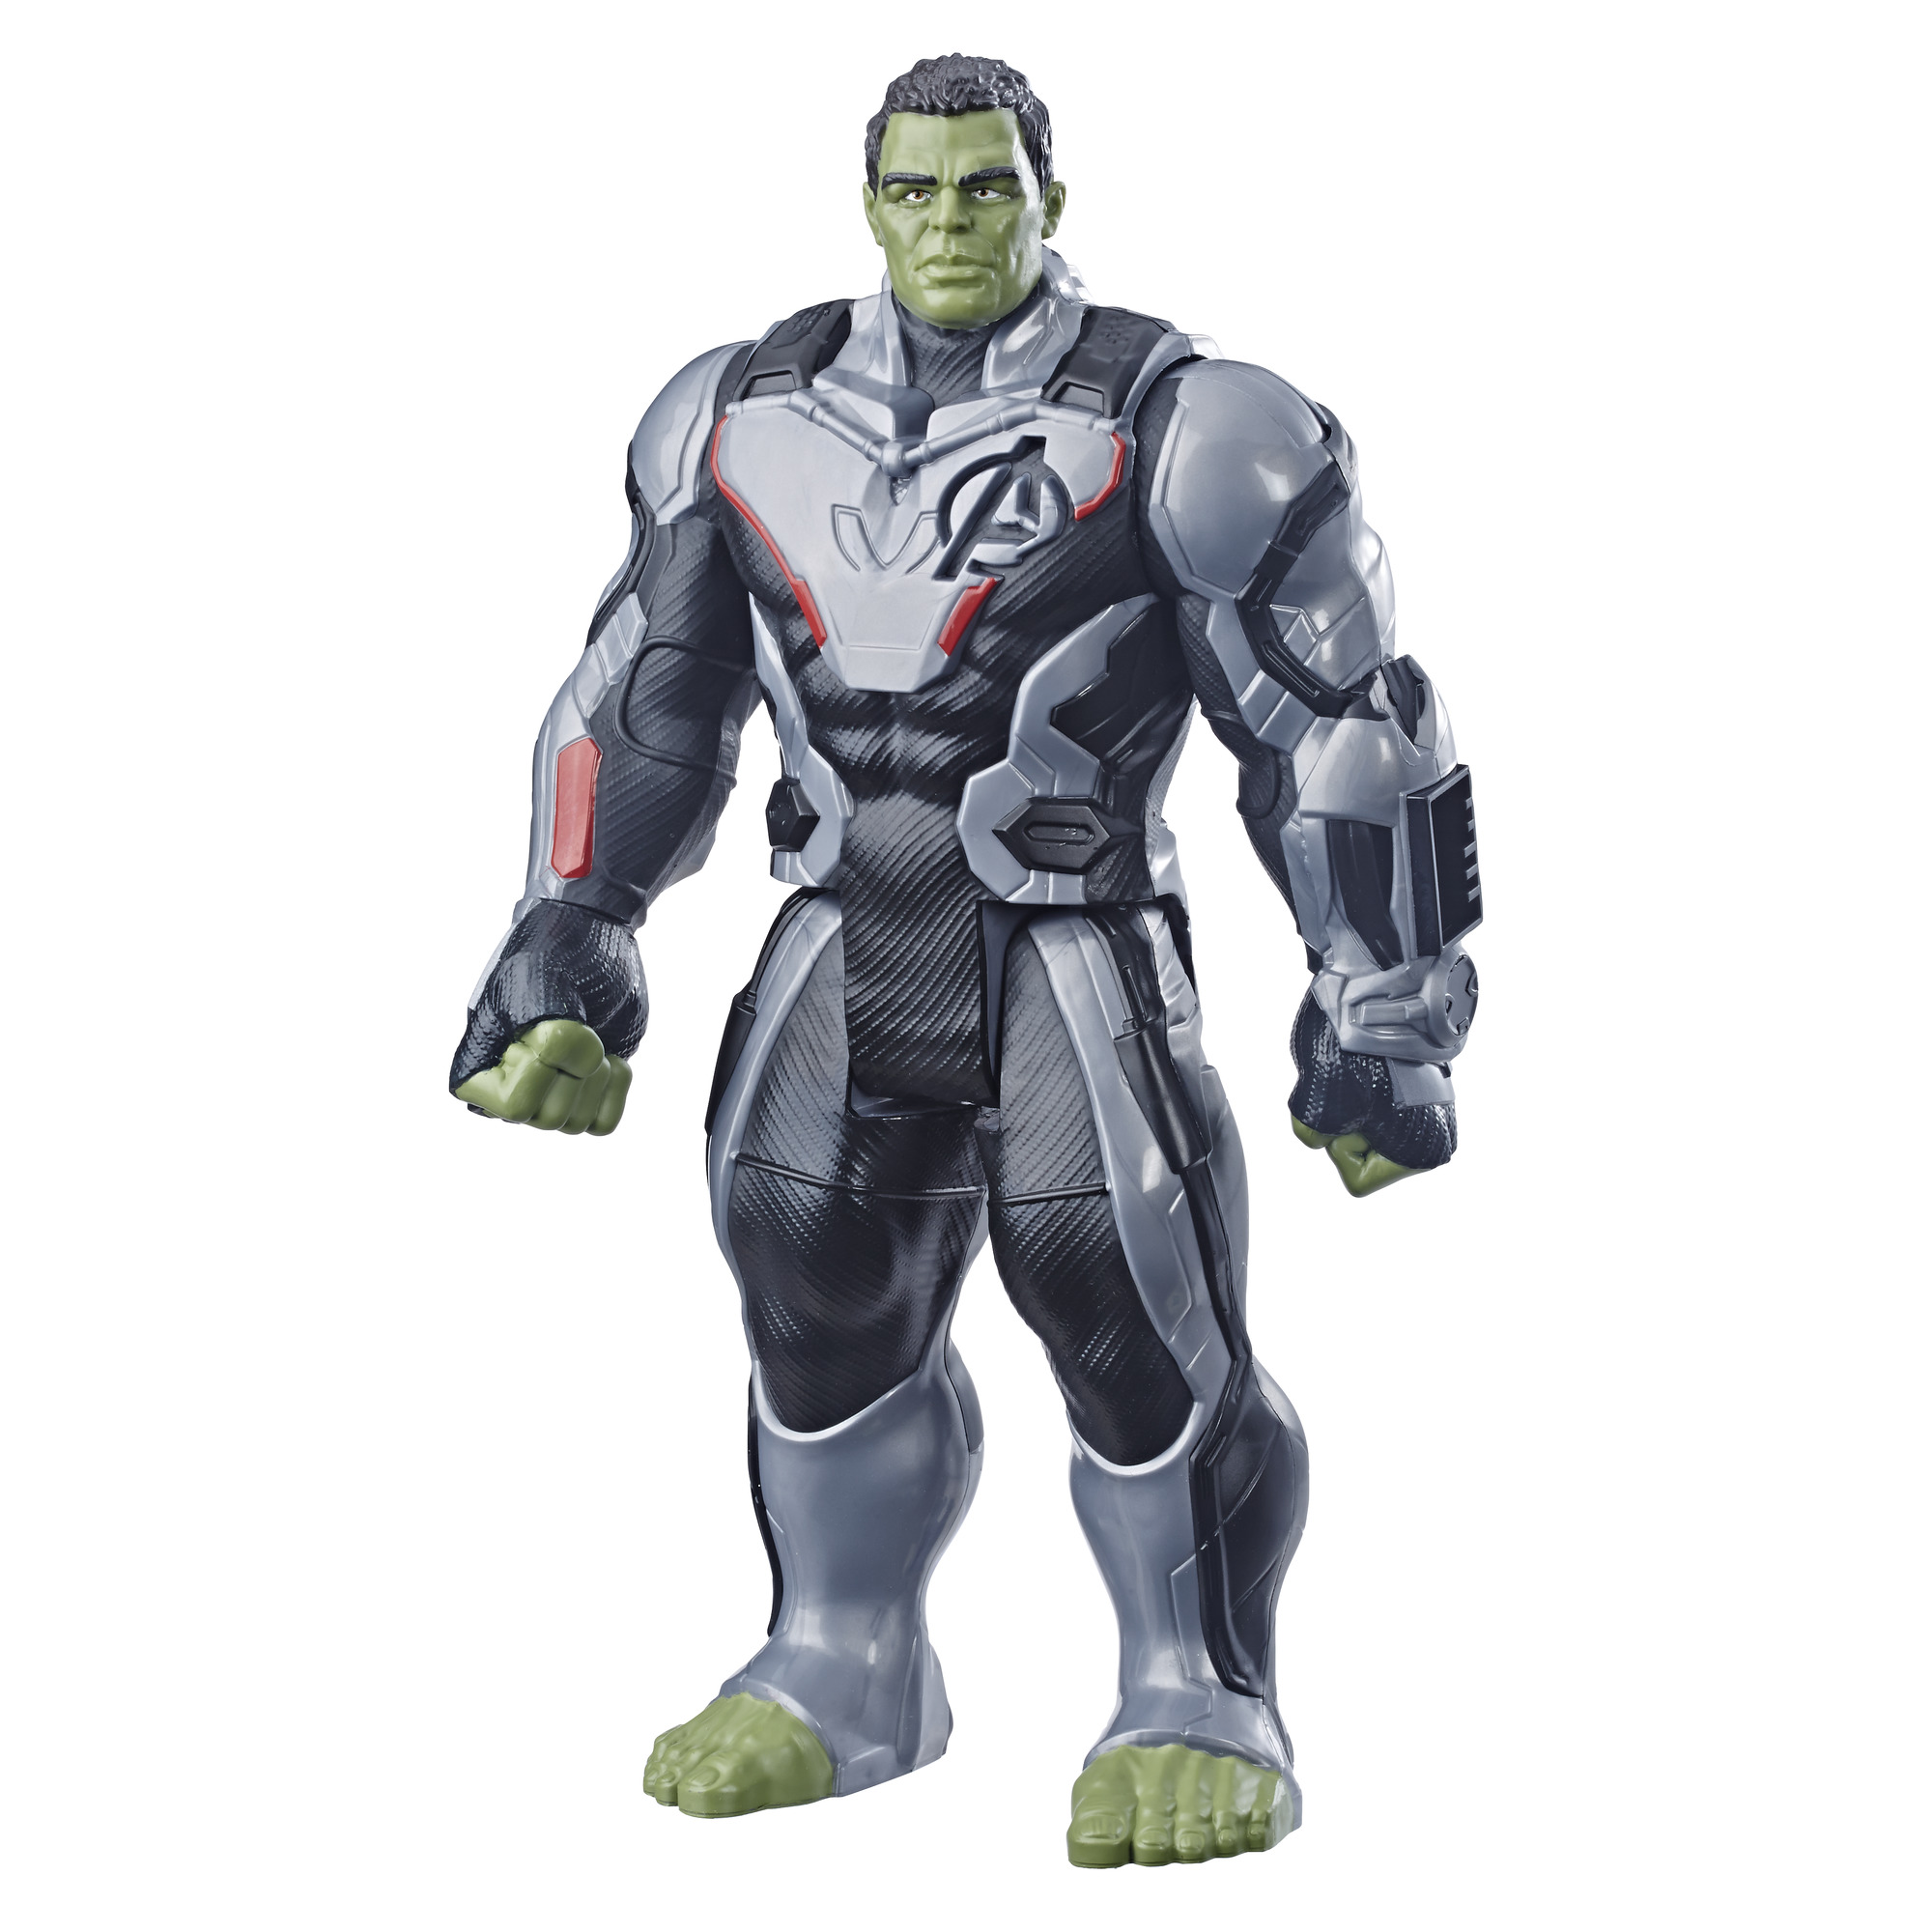 bbe68de7 Avengers Movies, Toys, Books, Clothing, and more